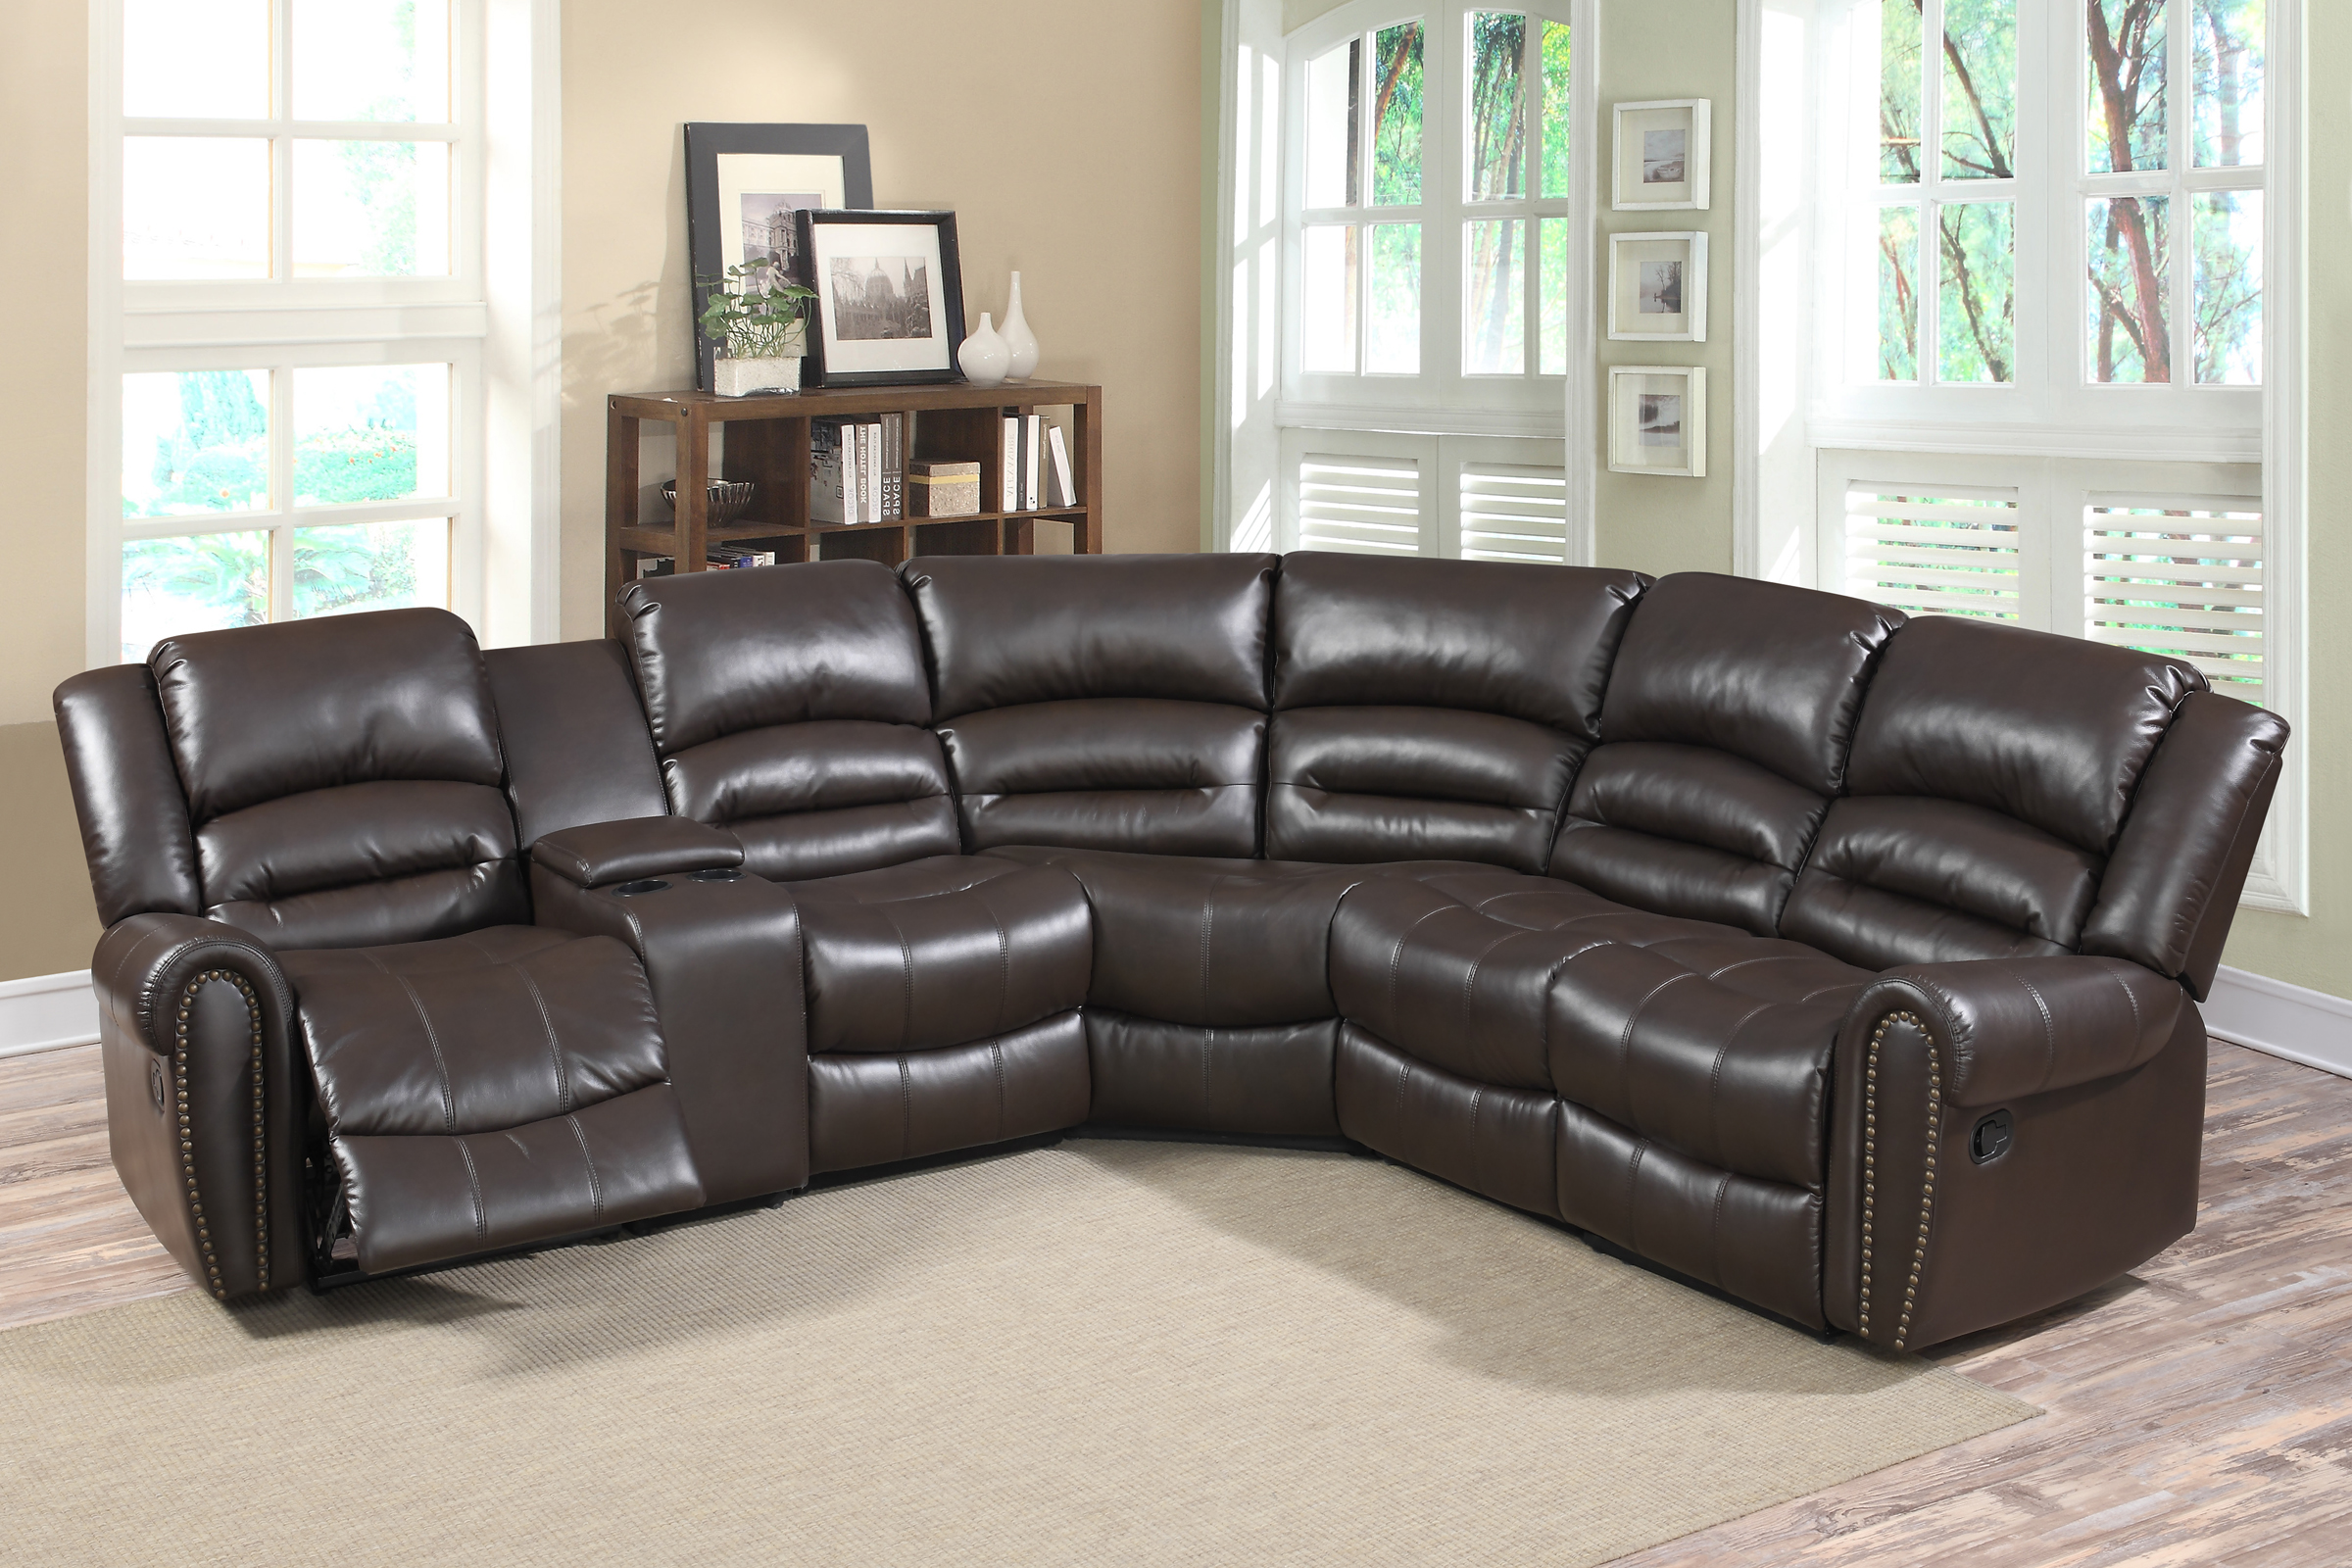 Grace 6 pc Leather Reclining Sectional Sofa Set with Storage